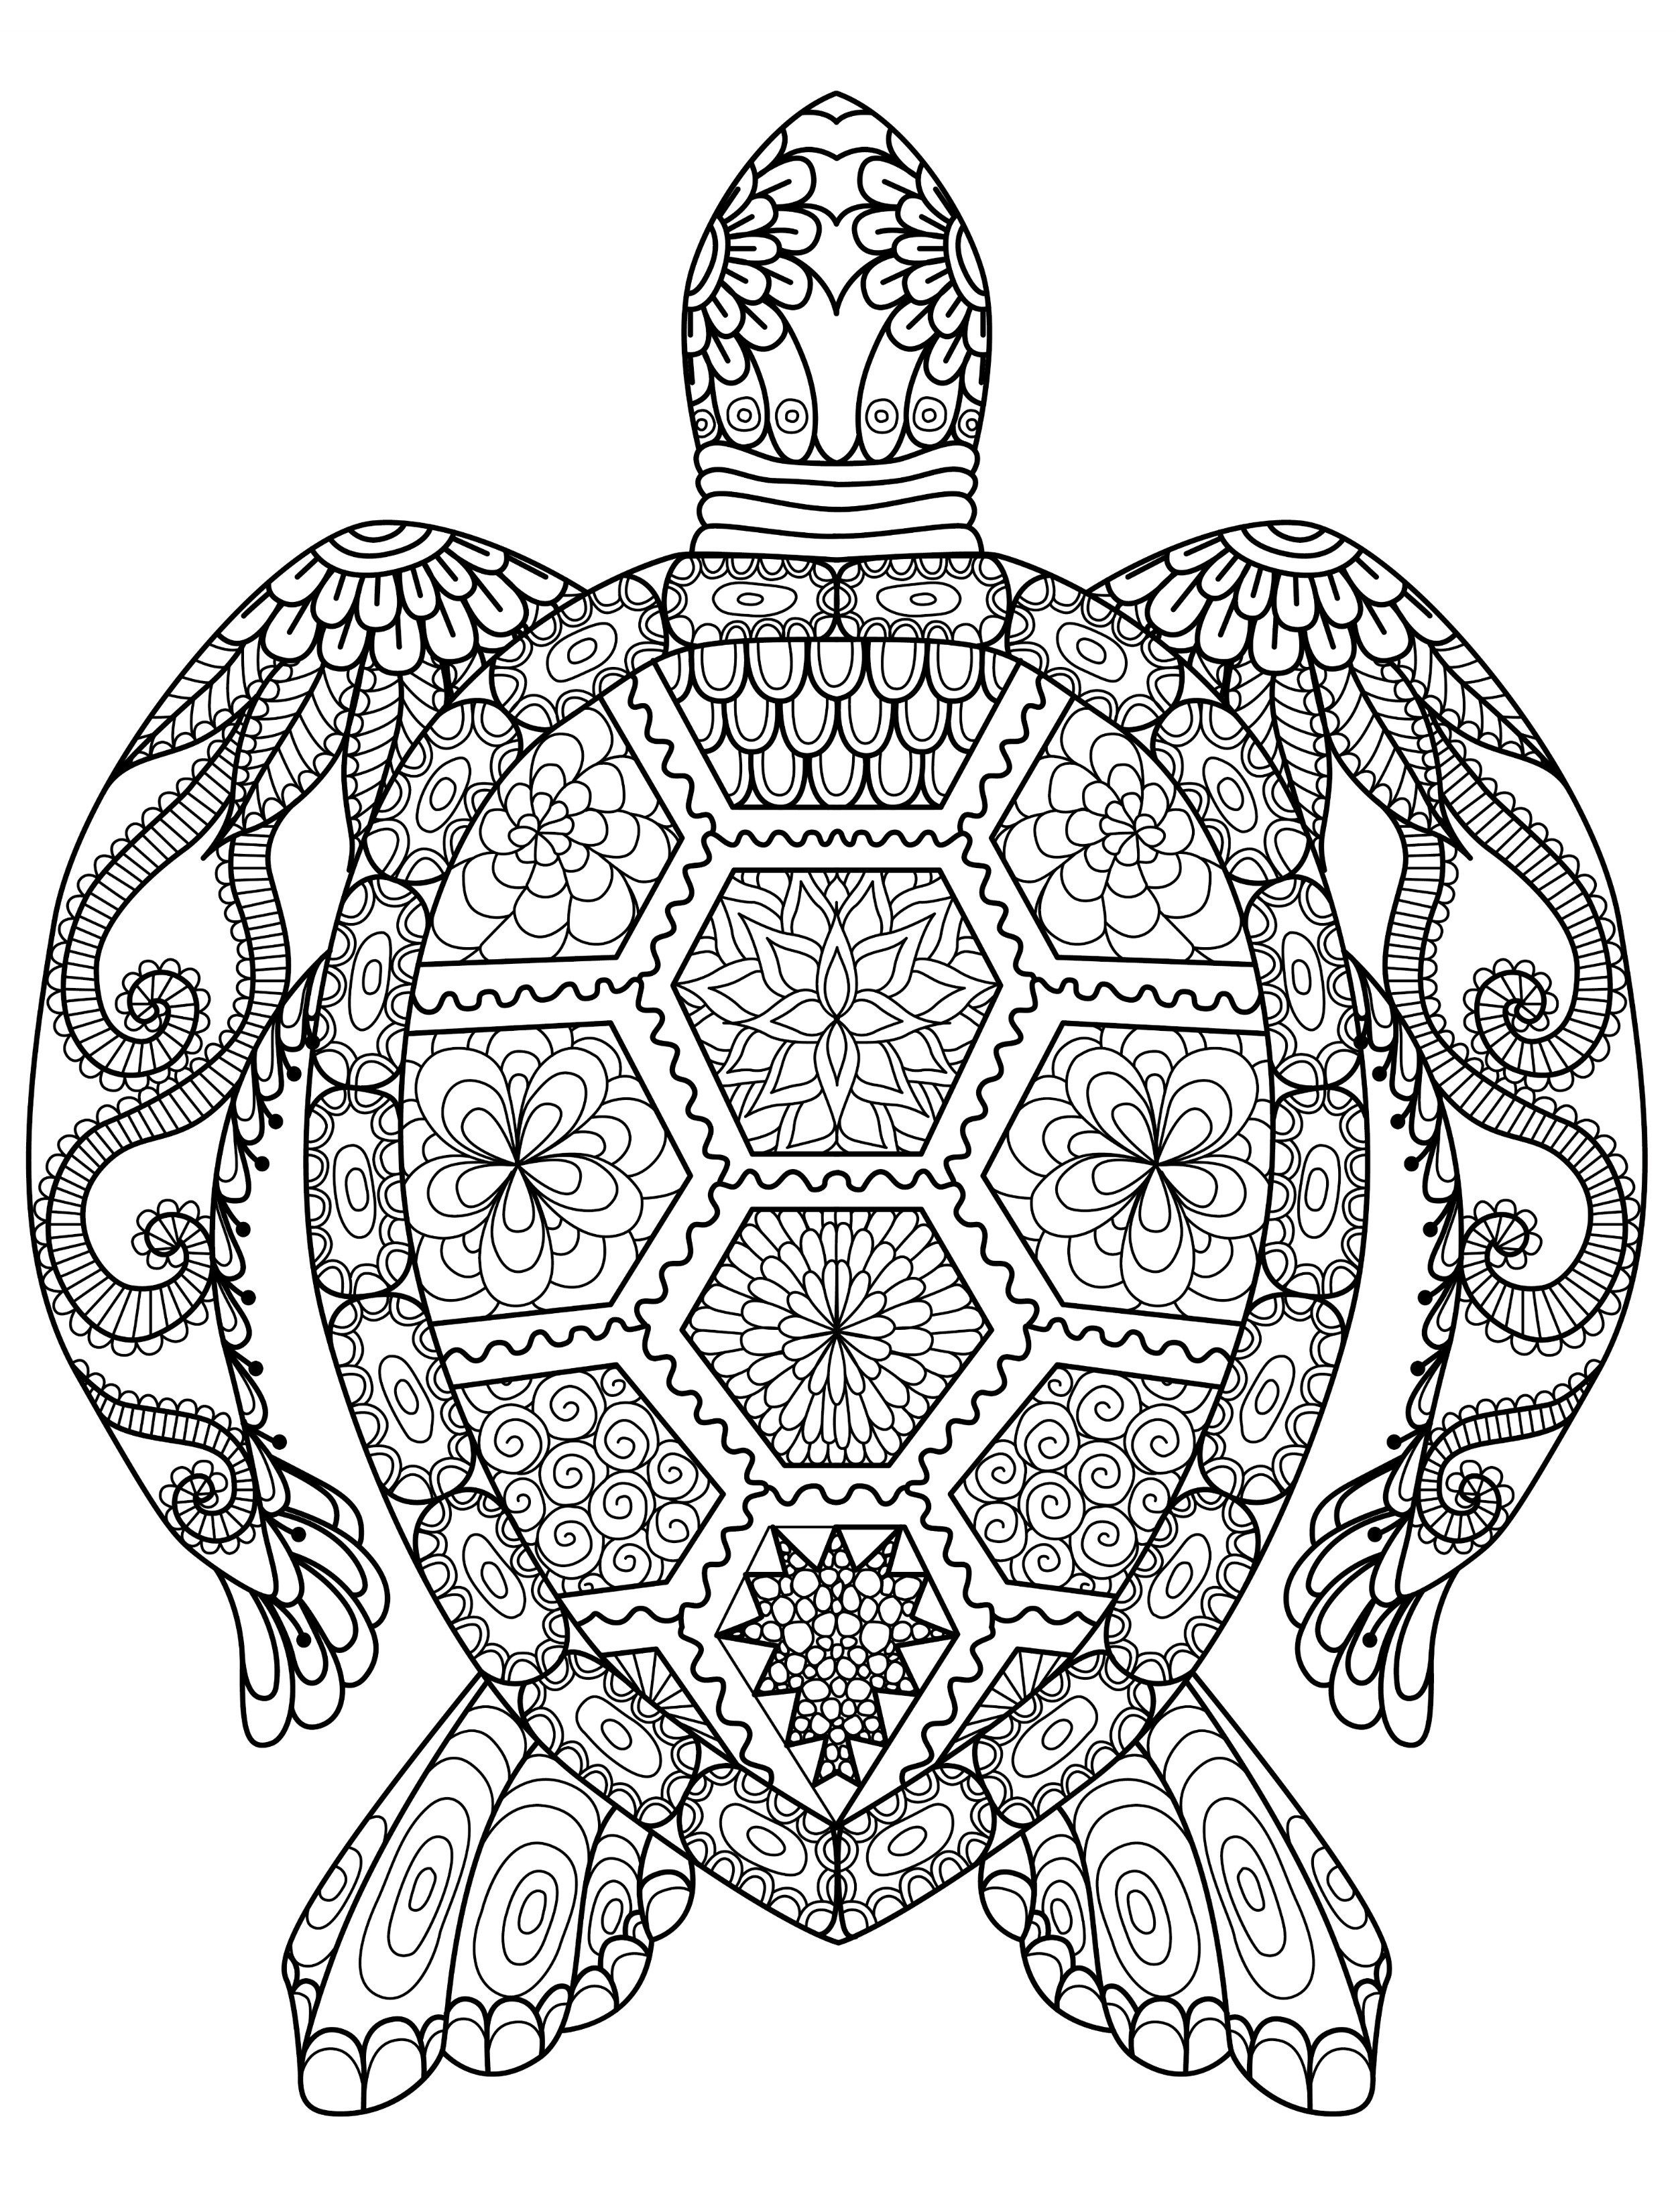 Coloring Pages Online For Adults Free At Getdrawings Free Download